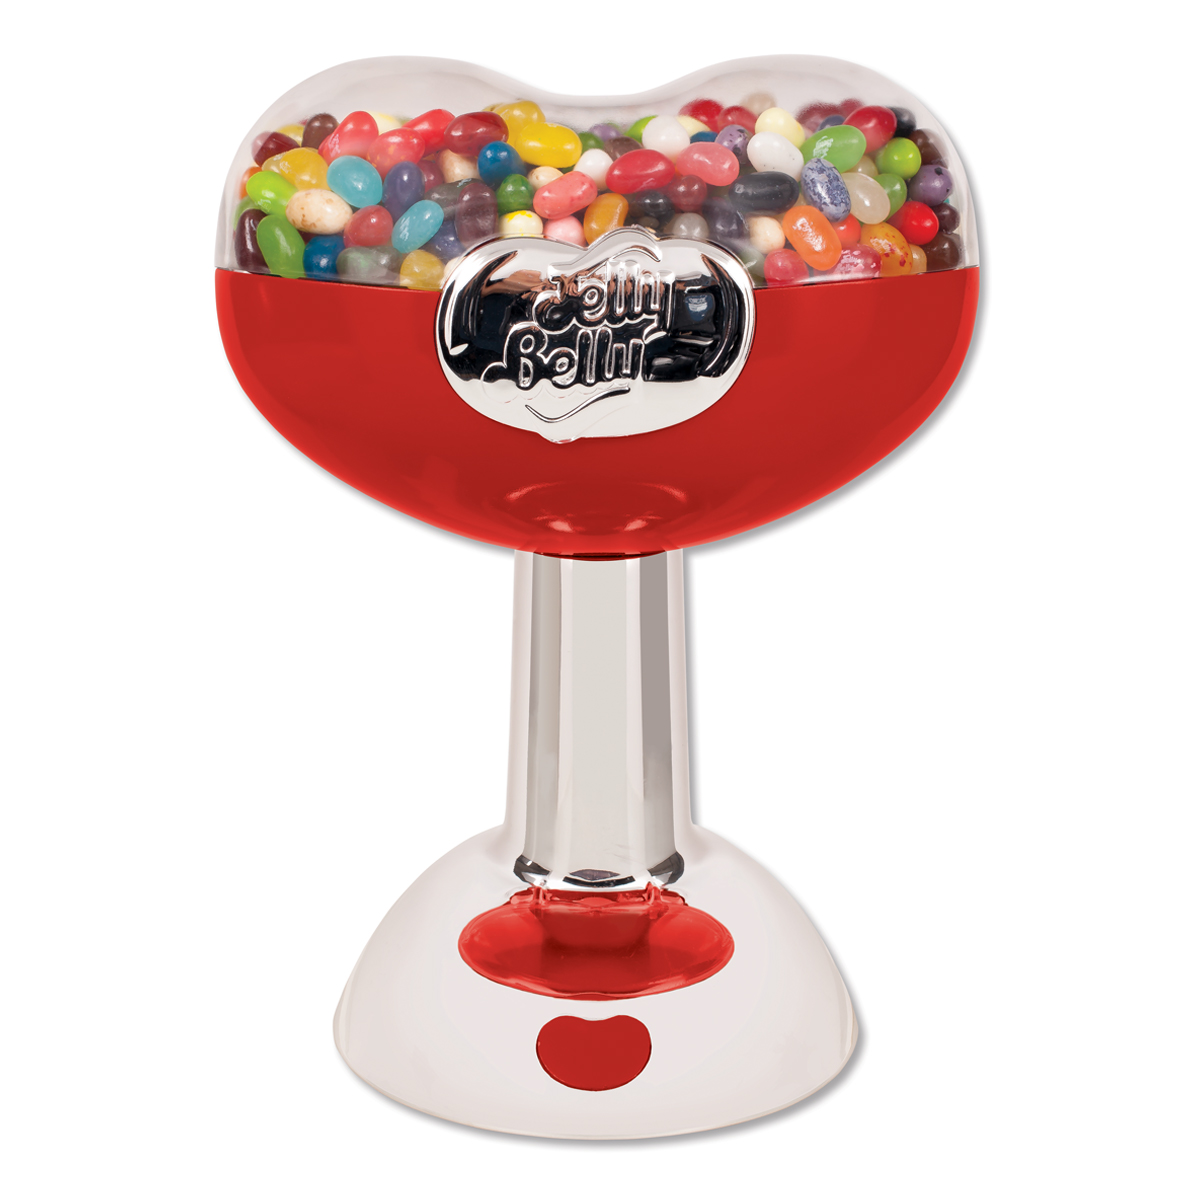 Classic Jelly Belly Bean Machine